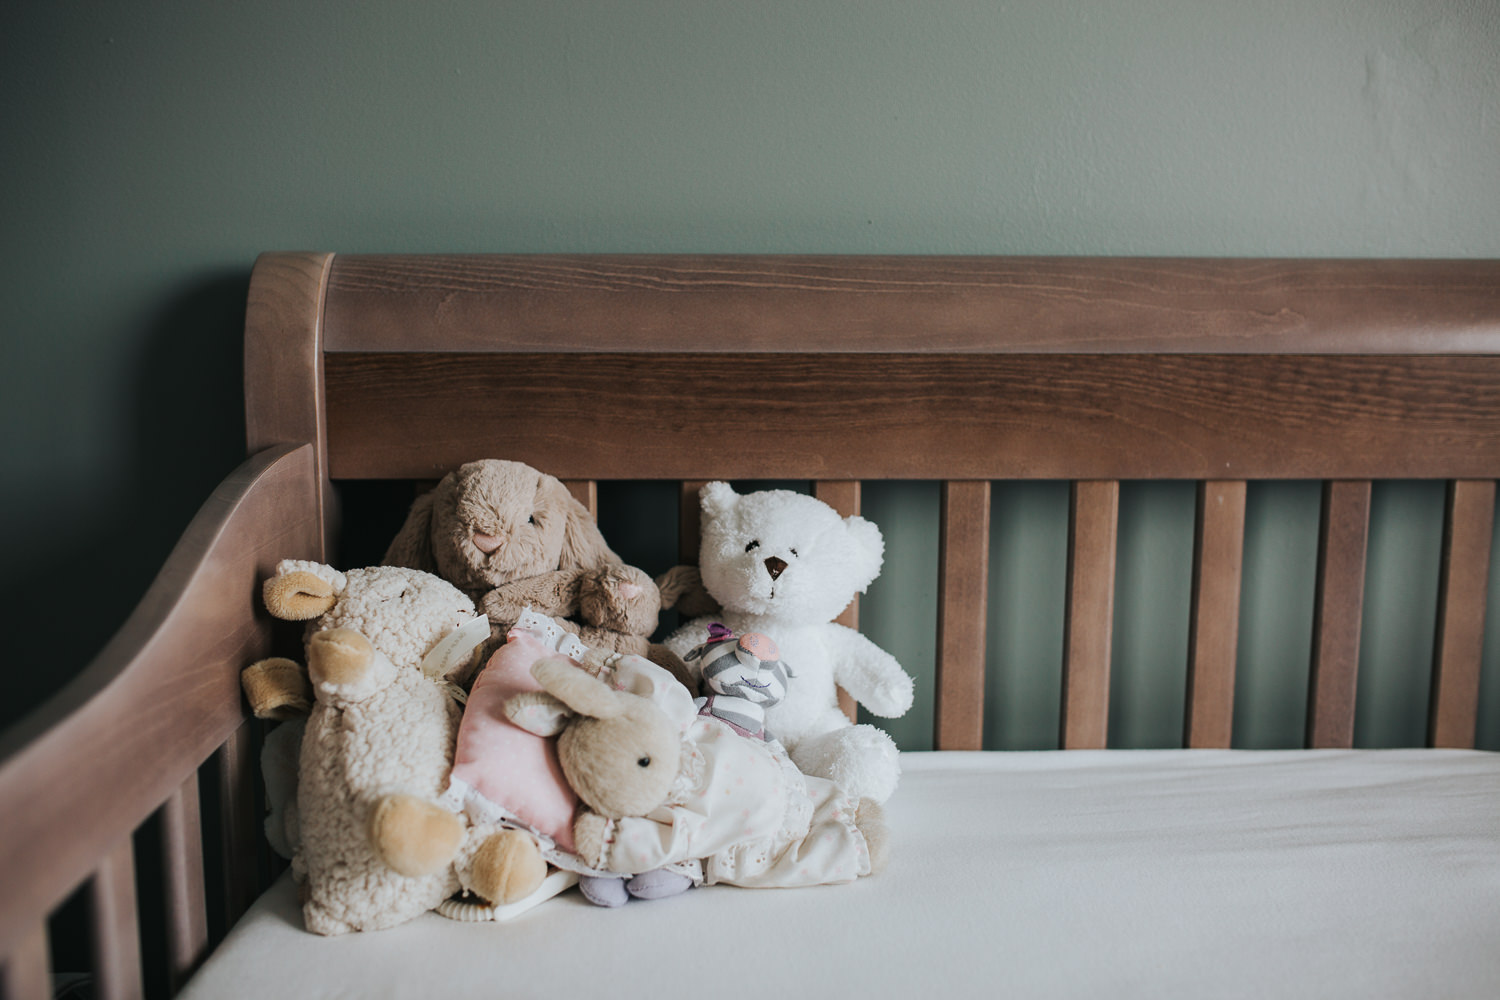 nursery details, stuffed animals in crib in green nursery - Barrie in-home photography